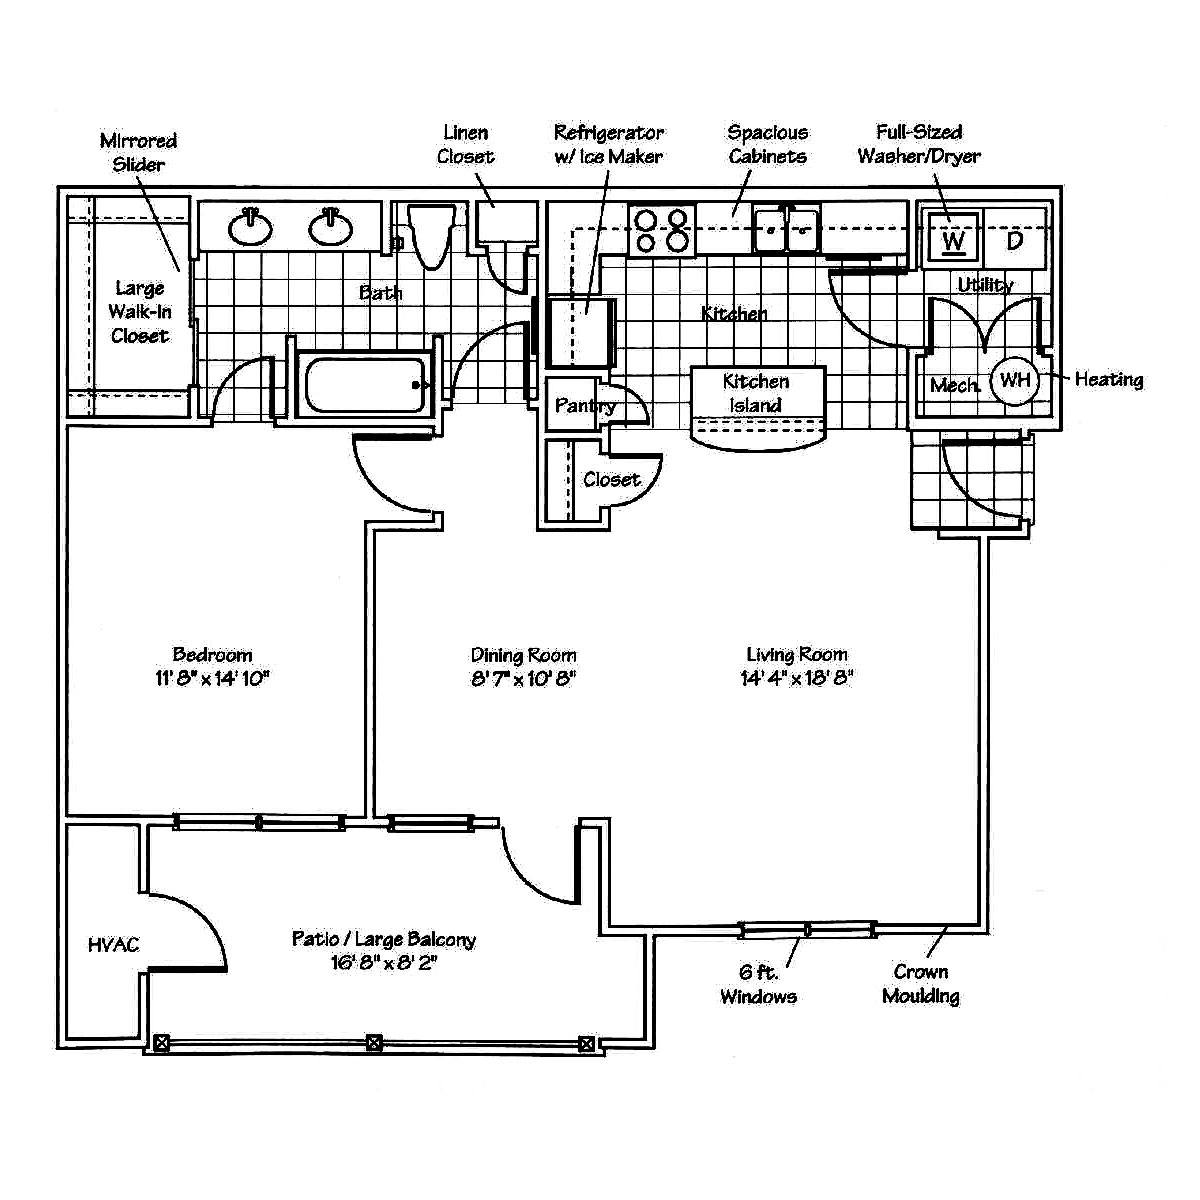 hight resolution of floor plan for st andrews 1 bedroom apartment with patio